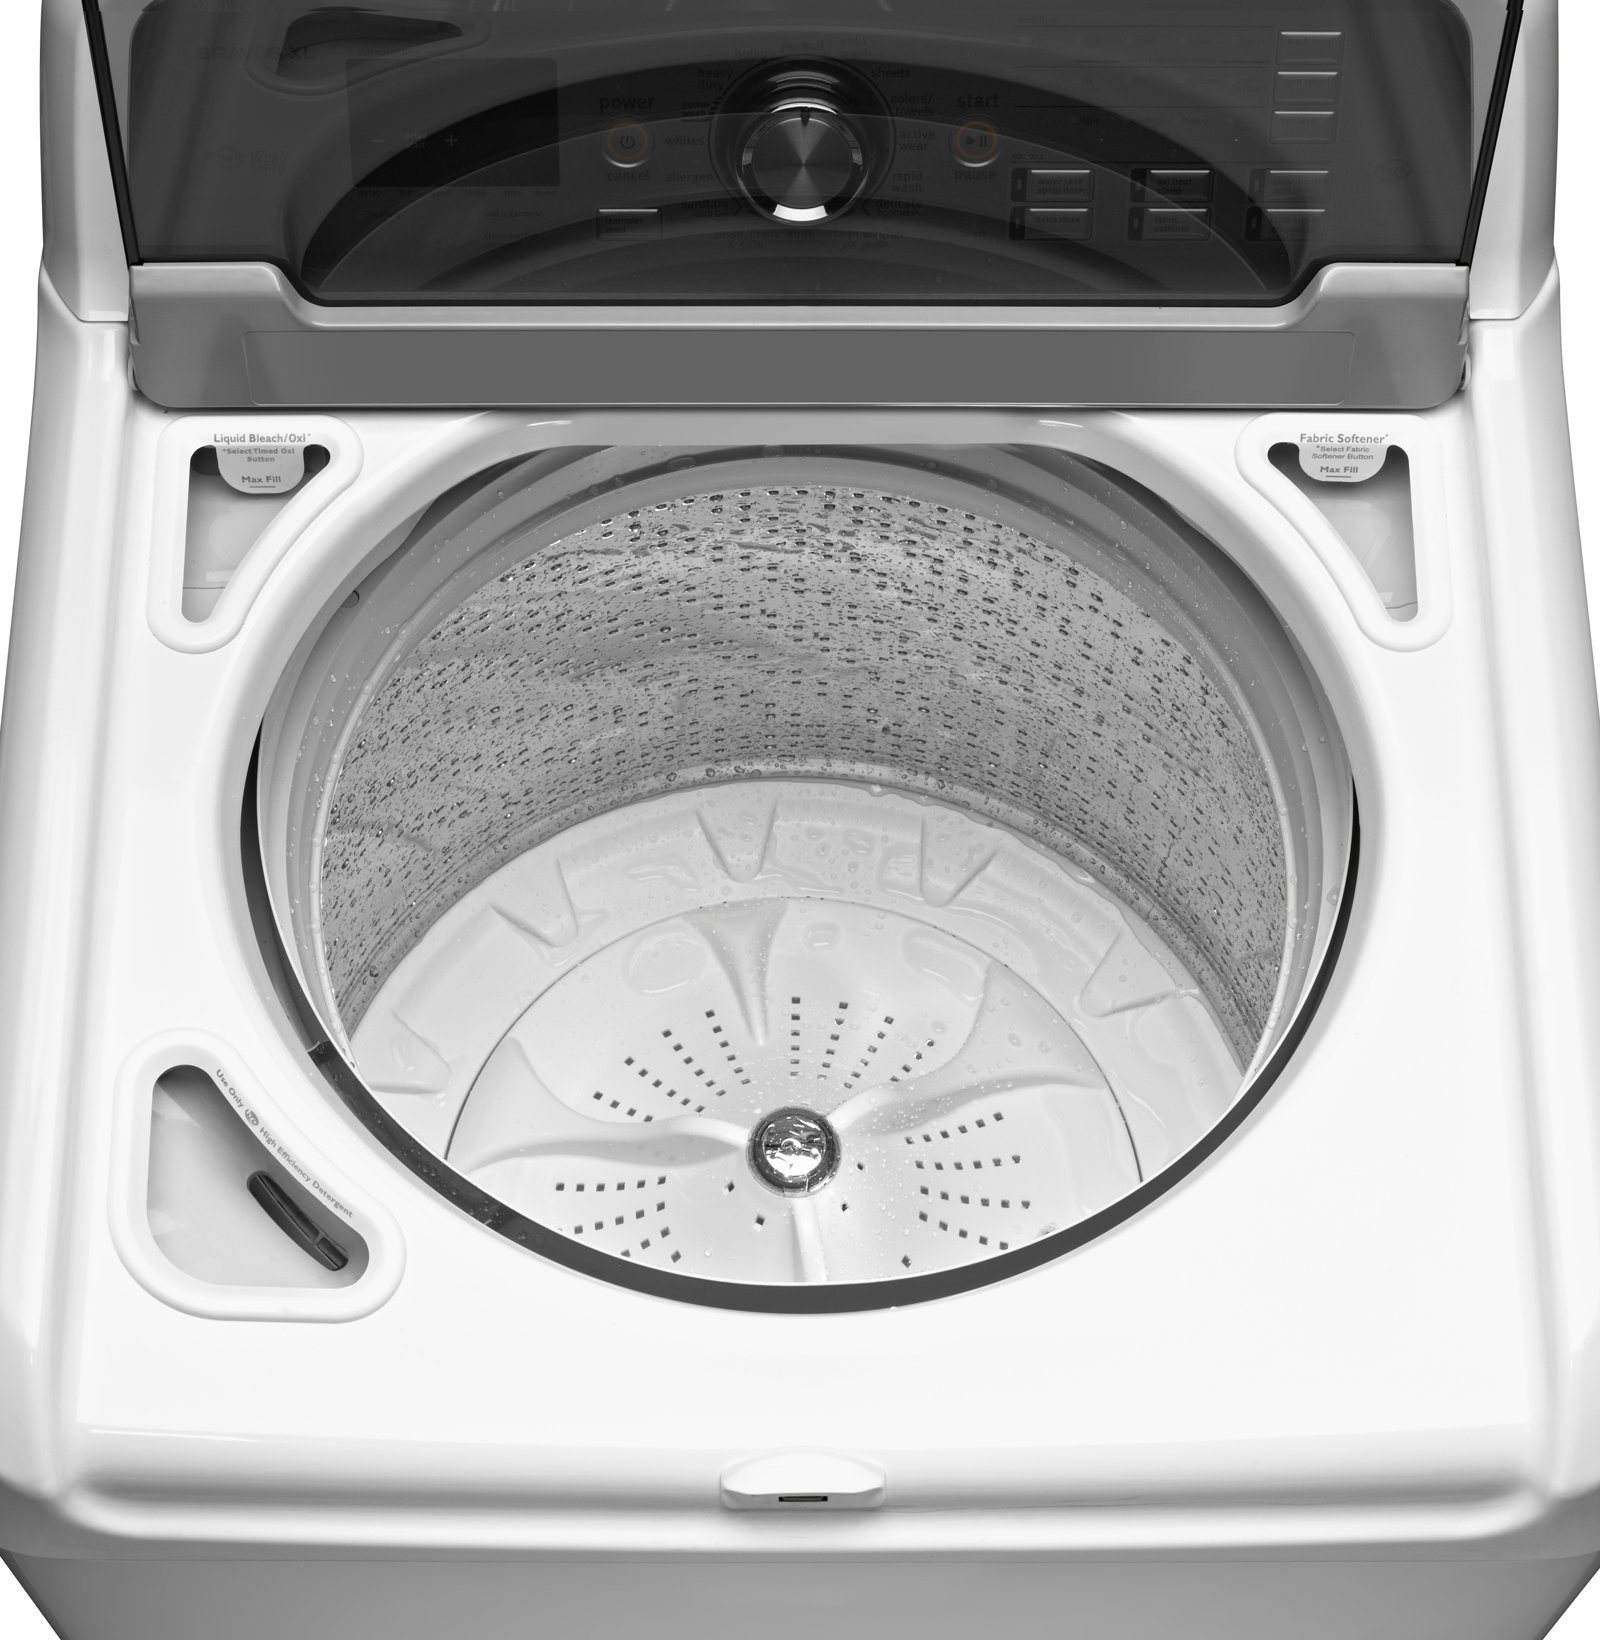 Maytag 4.8 cu. ft. Bravos XL® HE Top-Load Washer w/ Oxi & Steam - White